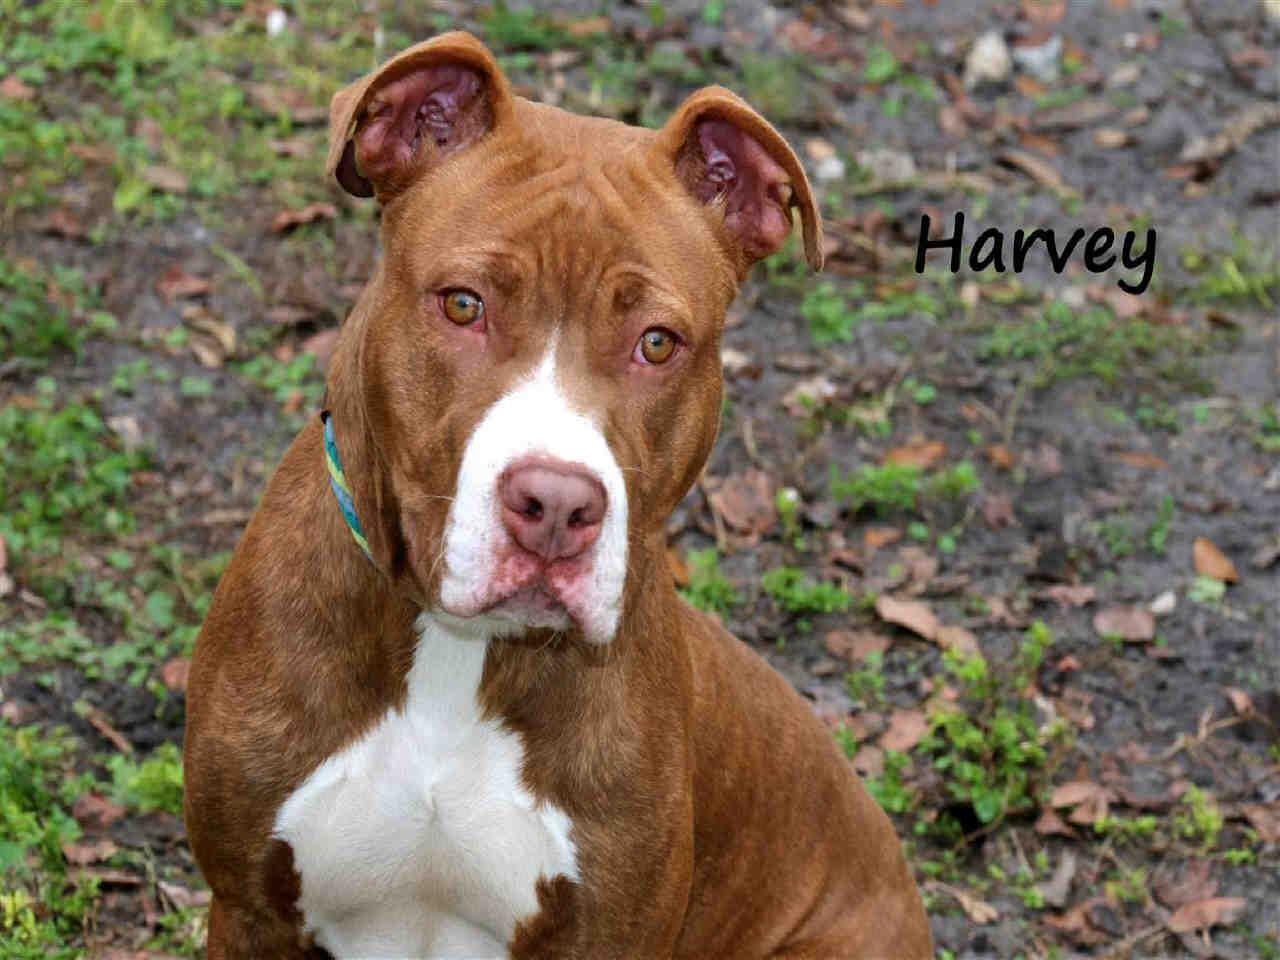 FLORIDA Harvey ID A579395 is an 8mos Am Staff mix in